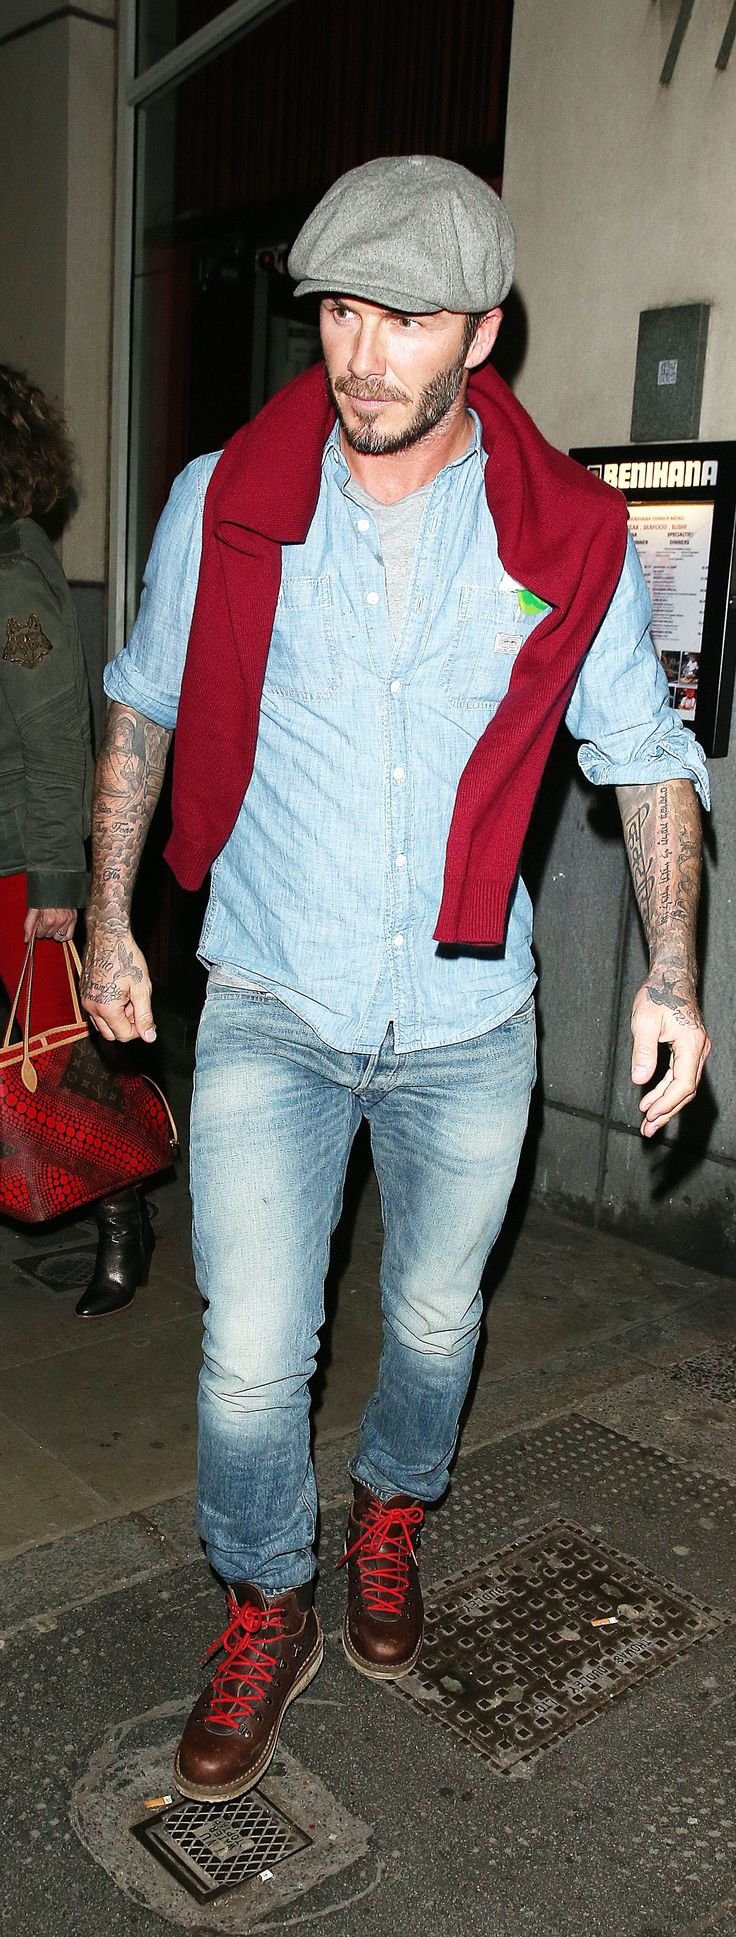 Getting it done in Ralph Lauren Denim & Supply: David Beckham does some holiday shopping in London in the chambray utility shirt